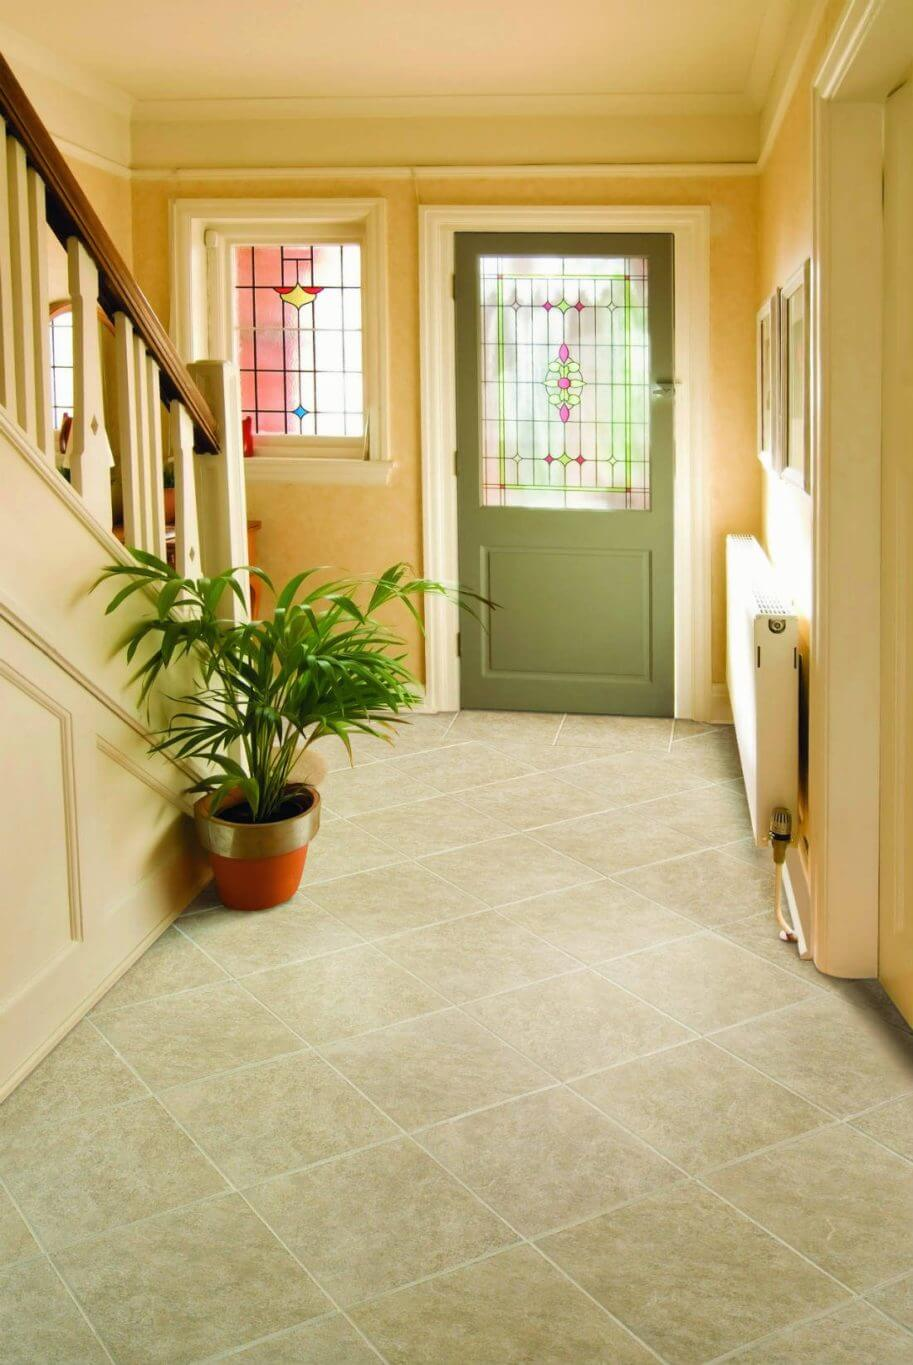 Diagonal square stone-look tile in a home's entranceway